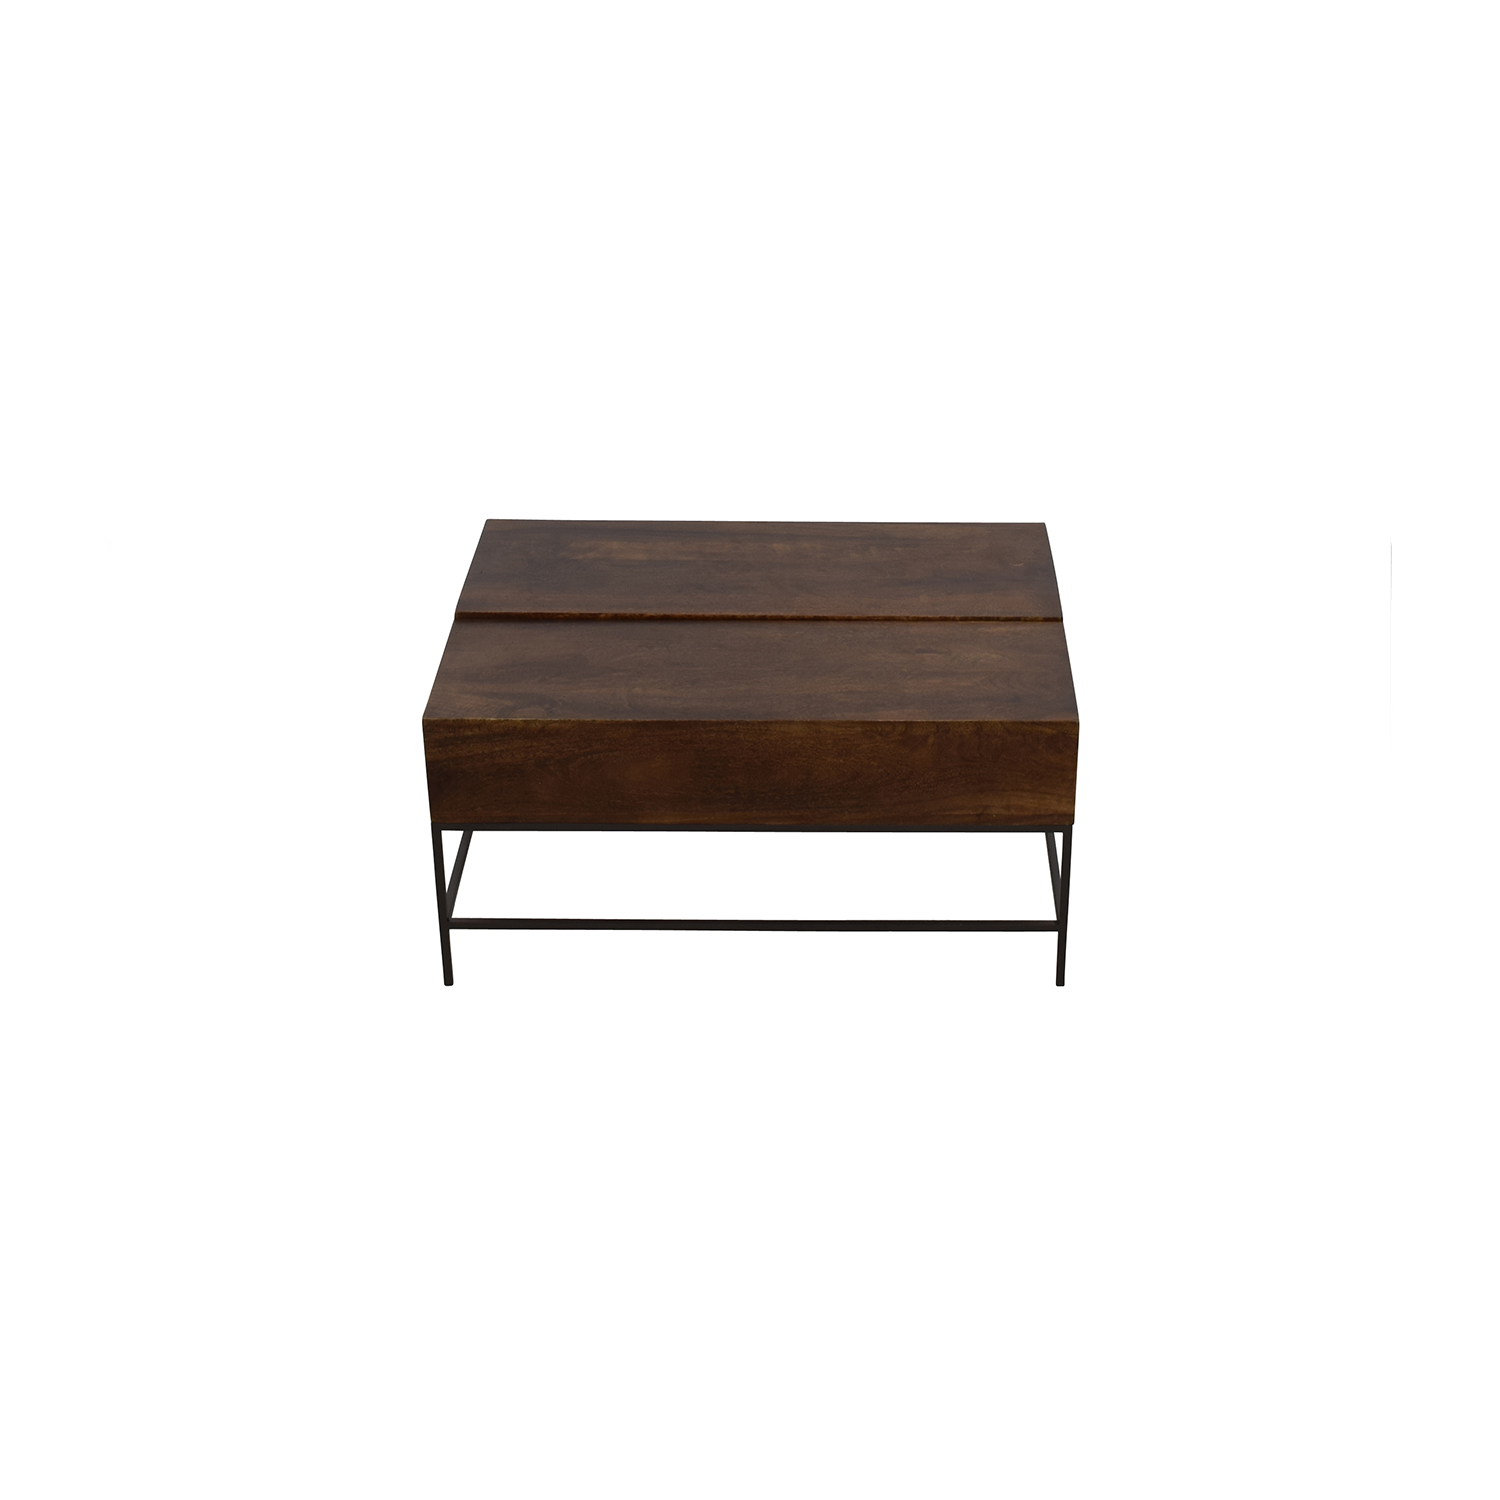 66 off ikea expedit coffee table tables for West elm industrial storage coffee table